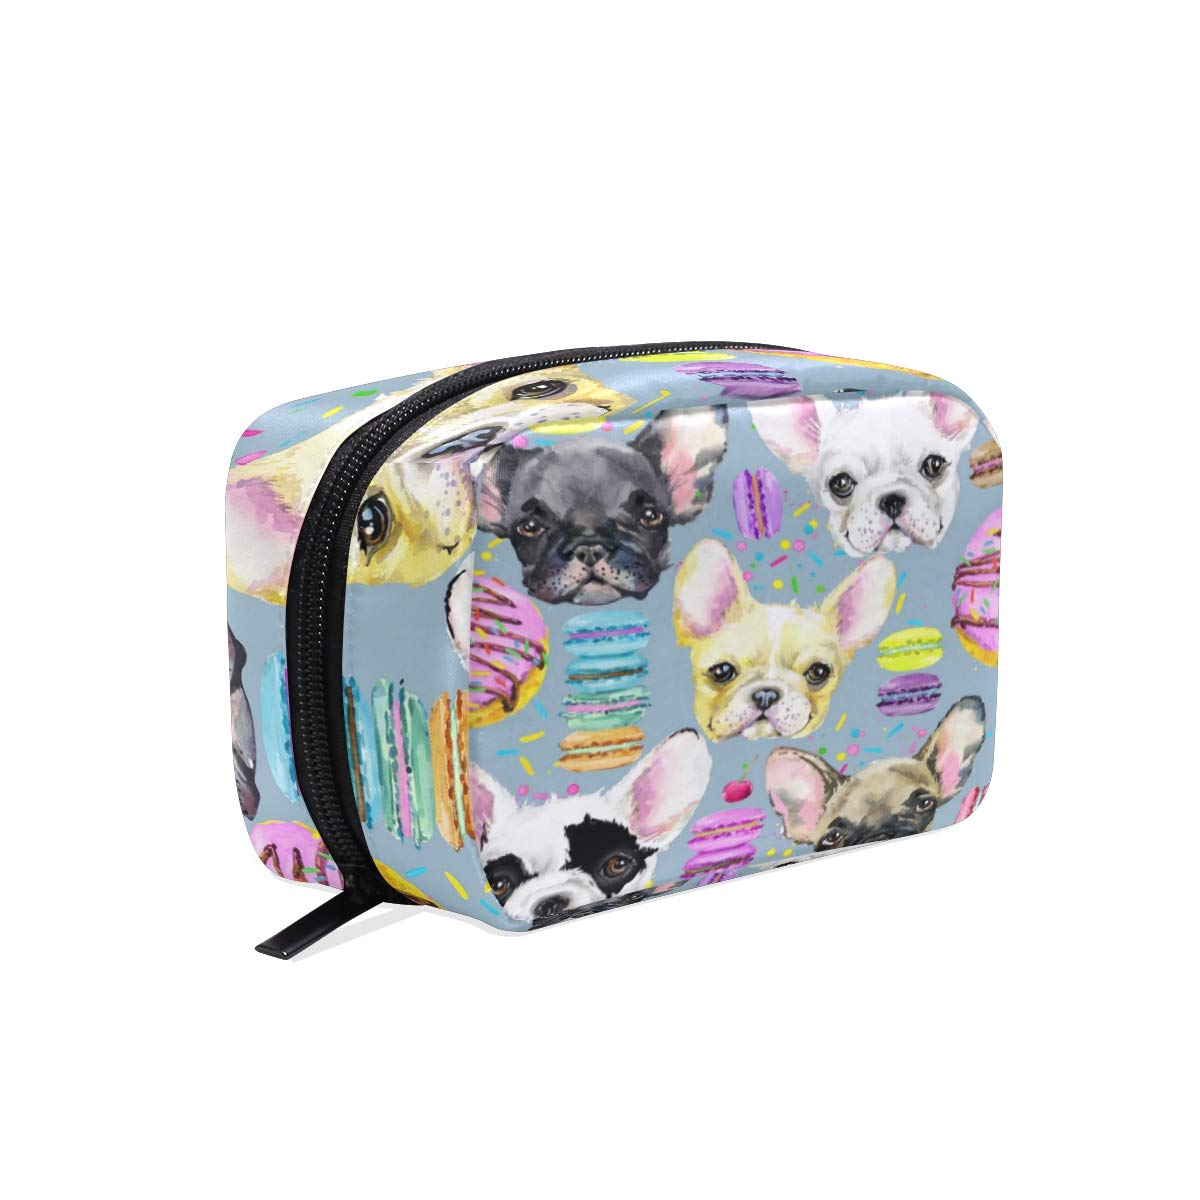 ALAZA Puppy Pug Dog Animal Makeup Cosmetic Portable Pouch Bag Organizer Capacity Storage Bag Gift for Women Girls